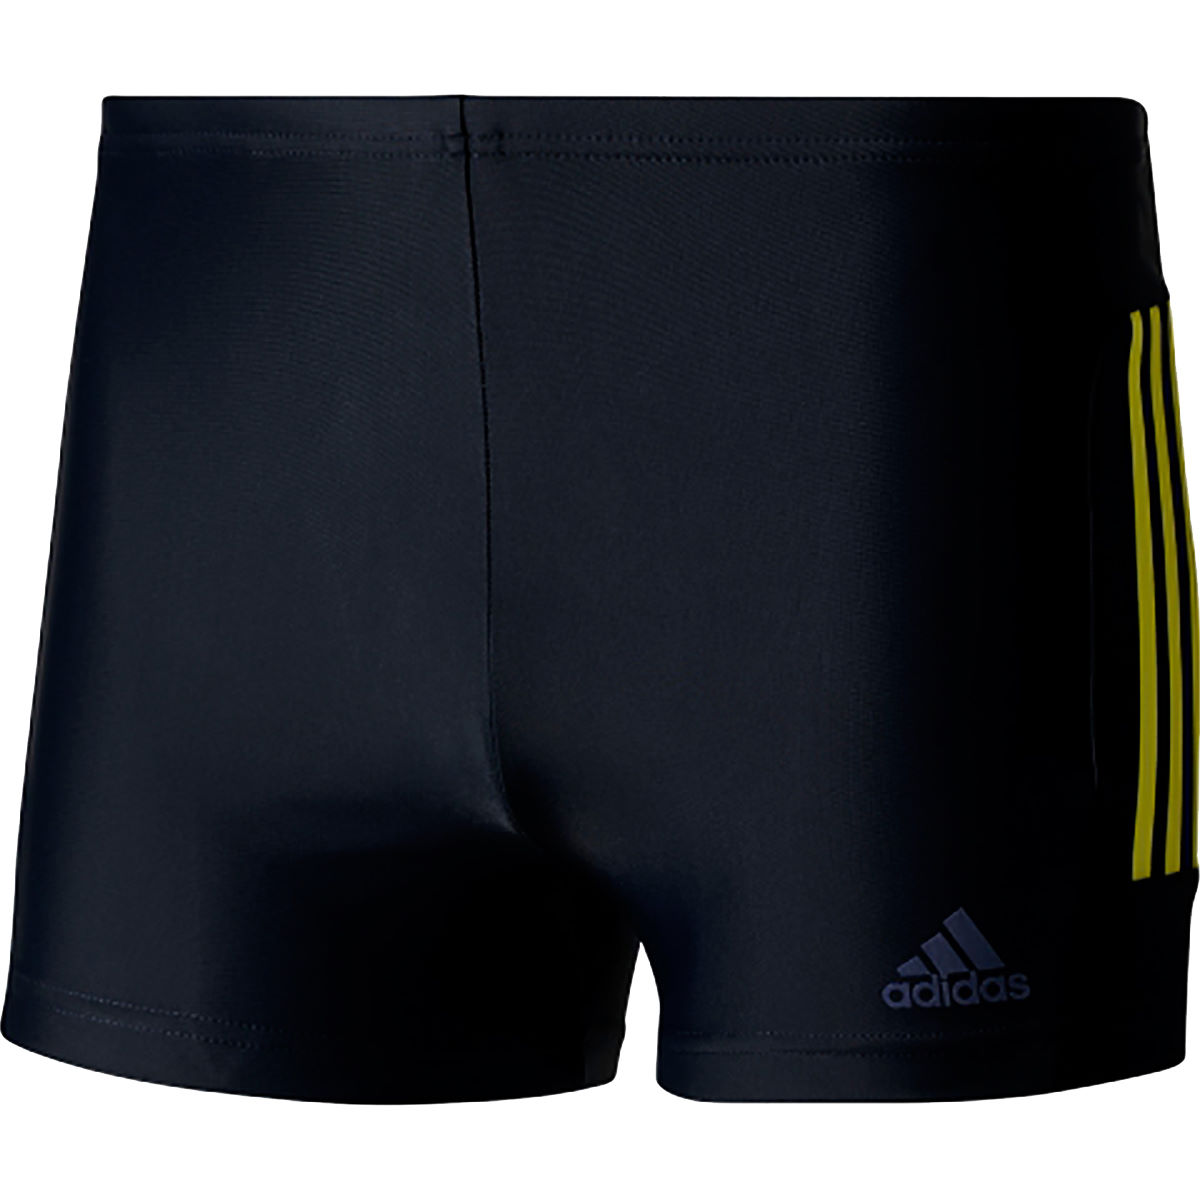 Boxer de bain Adidas Essence Core 3 Stripe - 28'' Legend Ink/Yellow